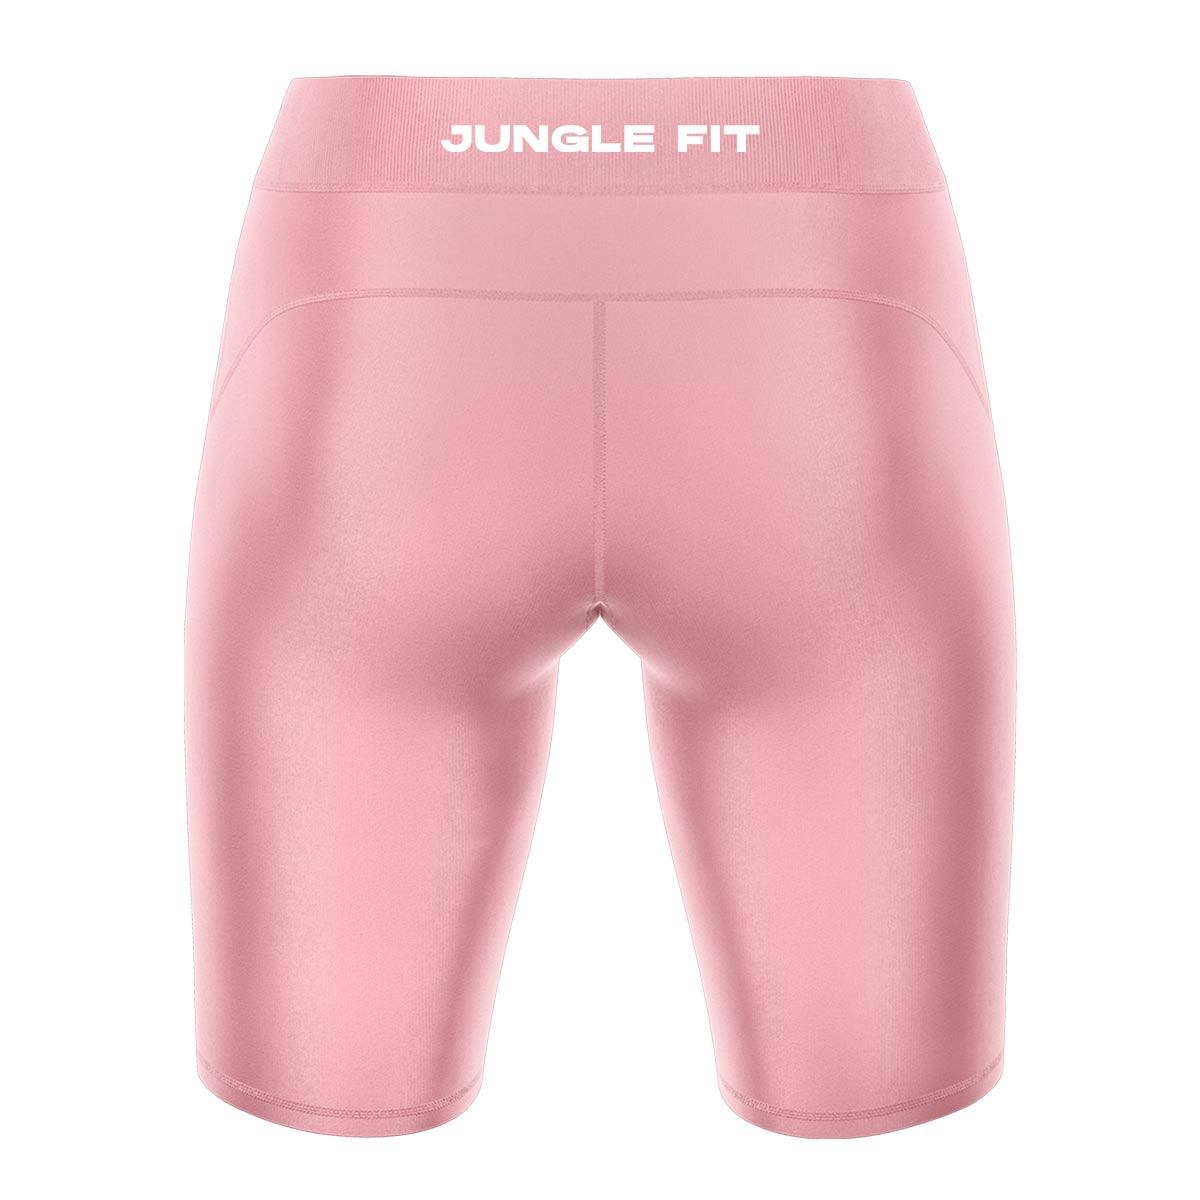 Light Pink Yoga Shorts